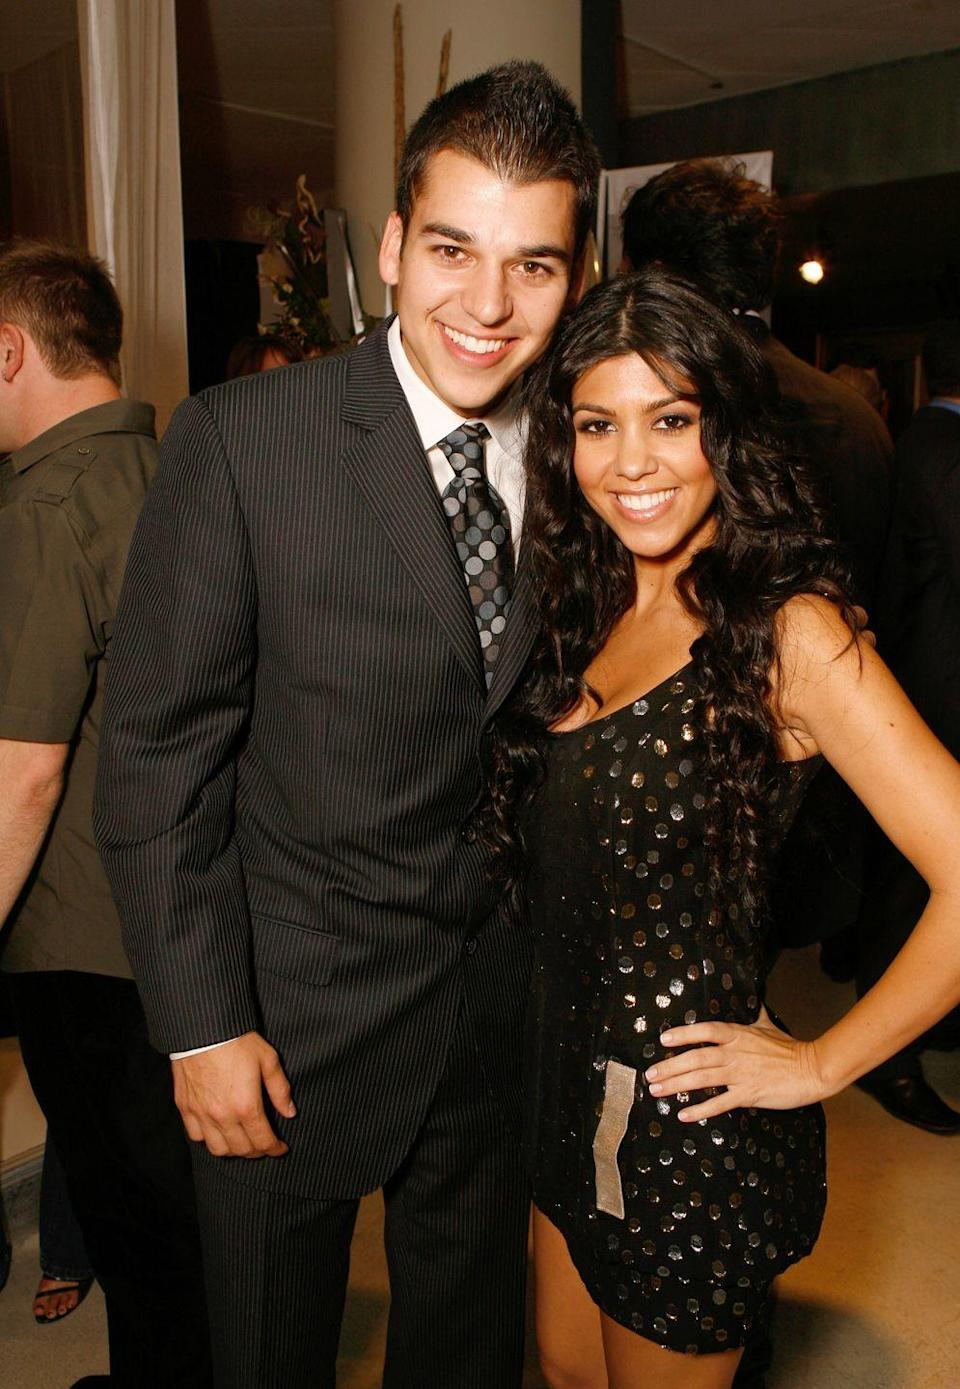 <p>While Rob has a lot of sisters, he looks the most similar to his oldest, Kourtney Kardashian. Both inherited their father, Robert Kardashian's, brown eyes and megawatt smile. </p>